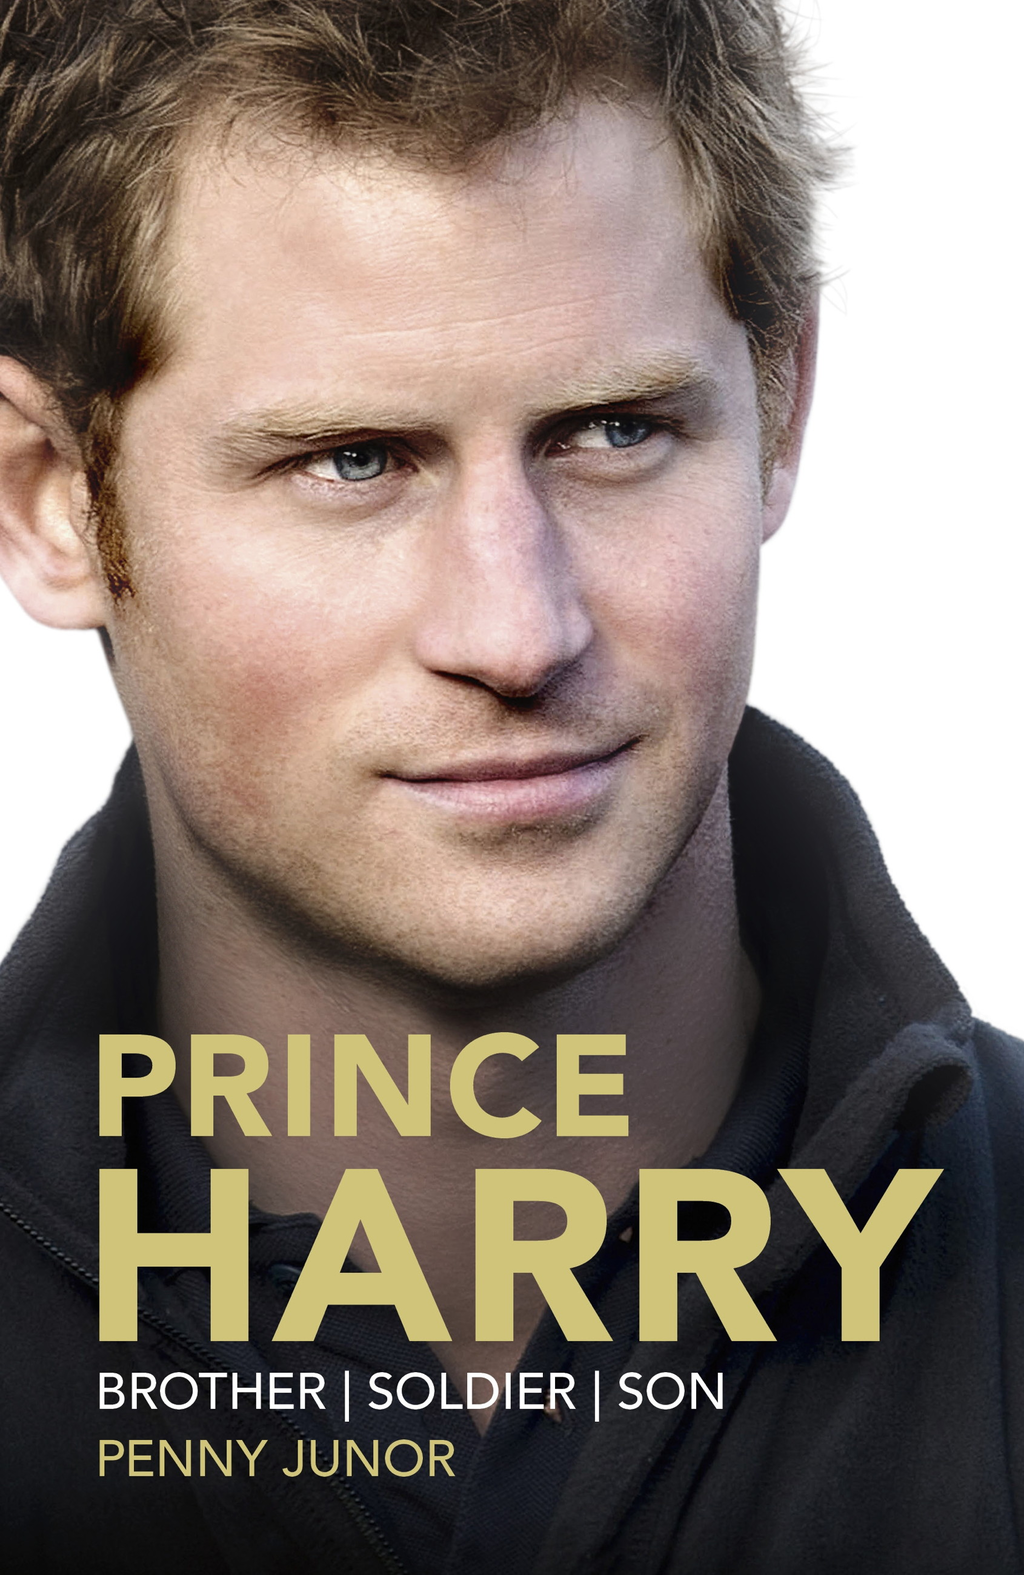 Prince Harry Brother,  Soldier,  Son